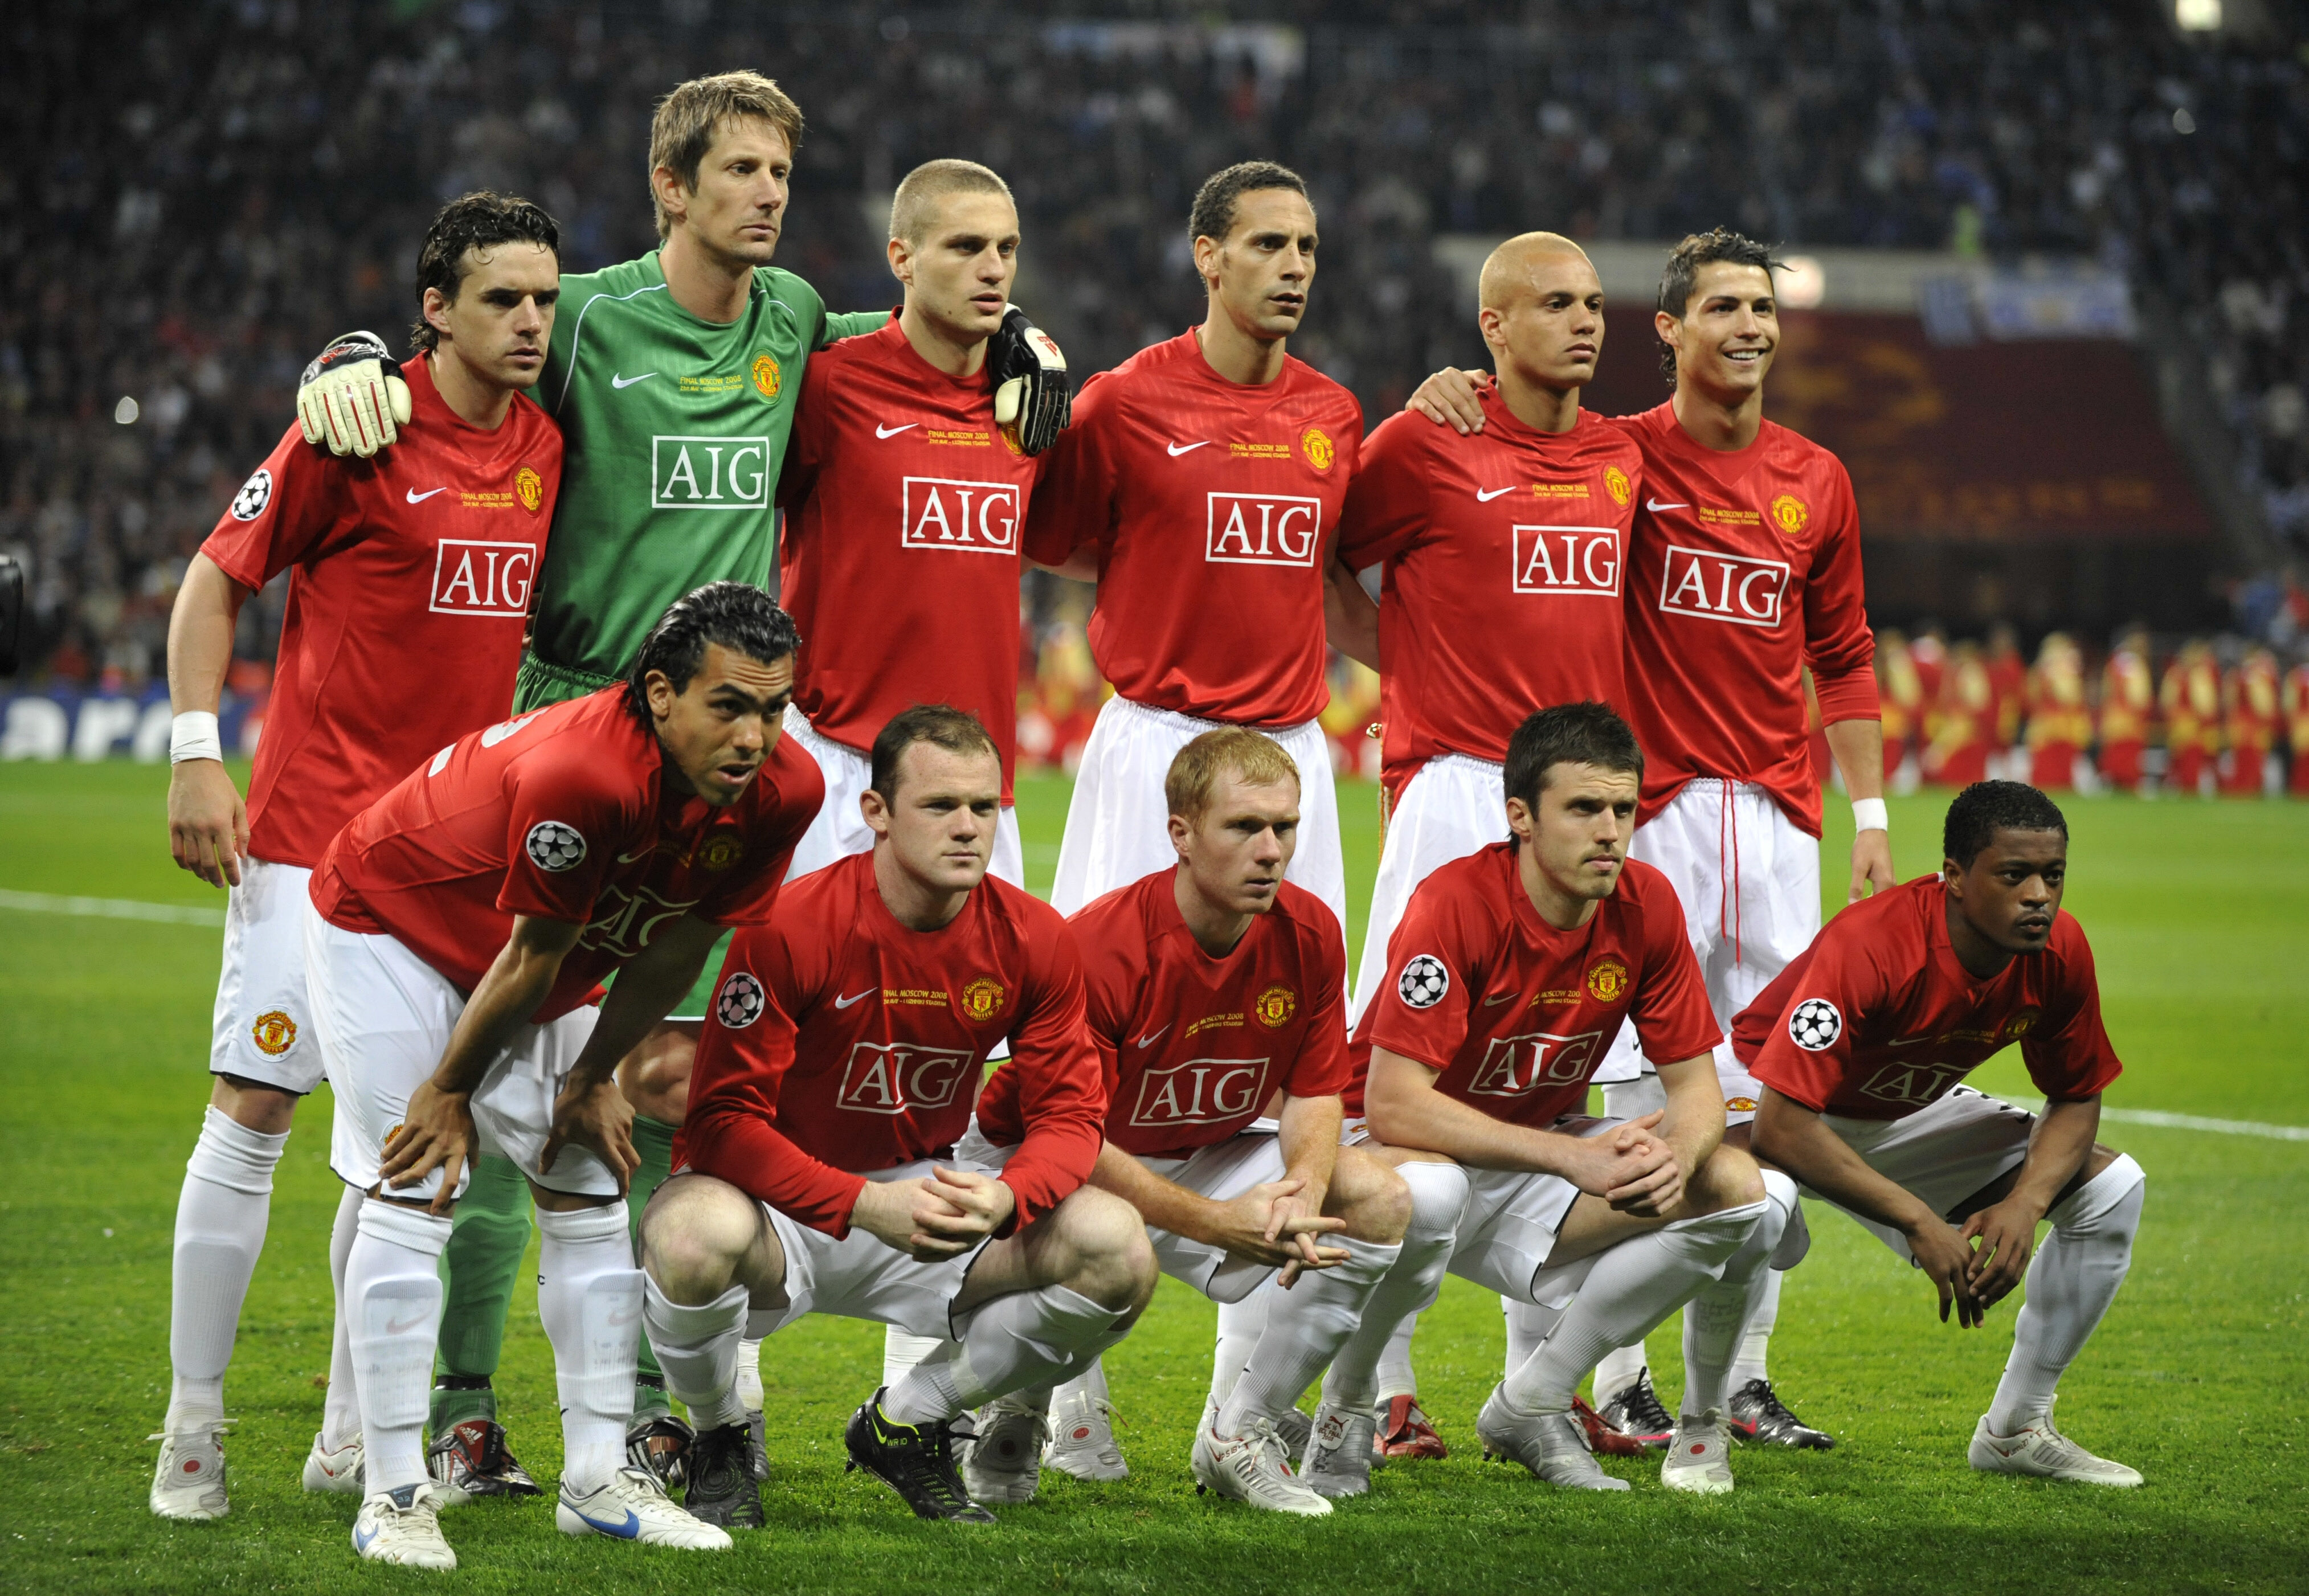 Download wallpaper rooney, cristiano ronaldo, Manchester United, old ...